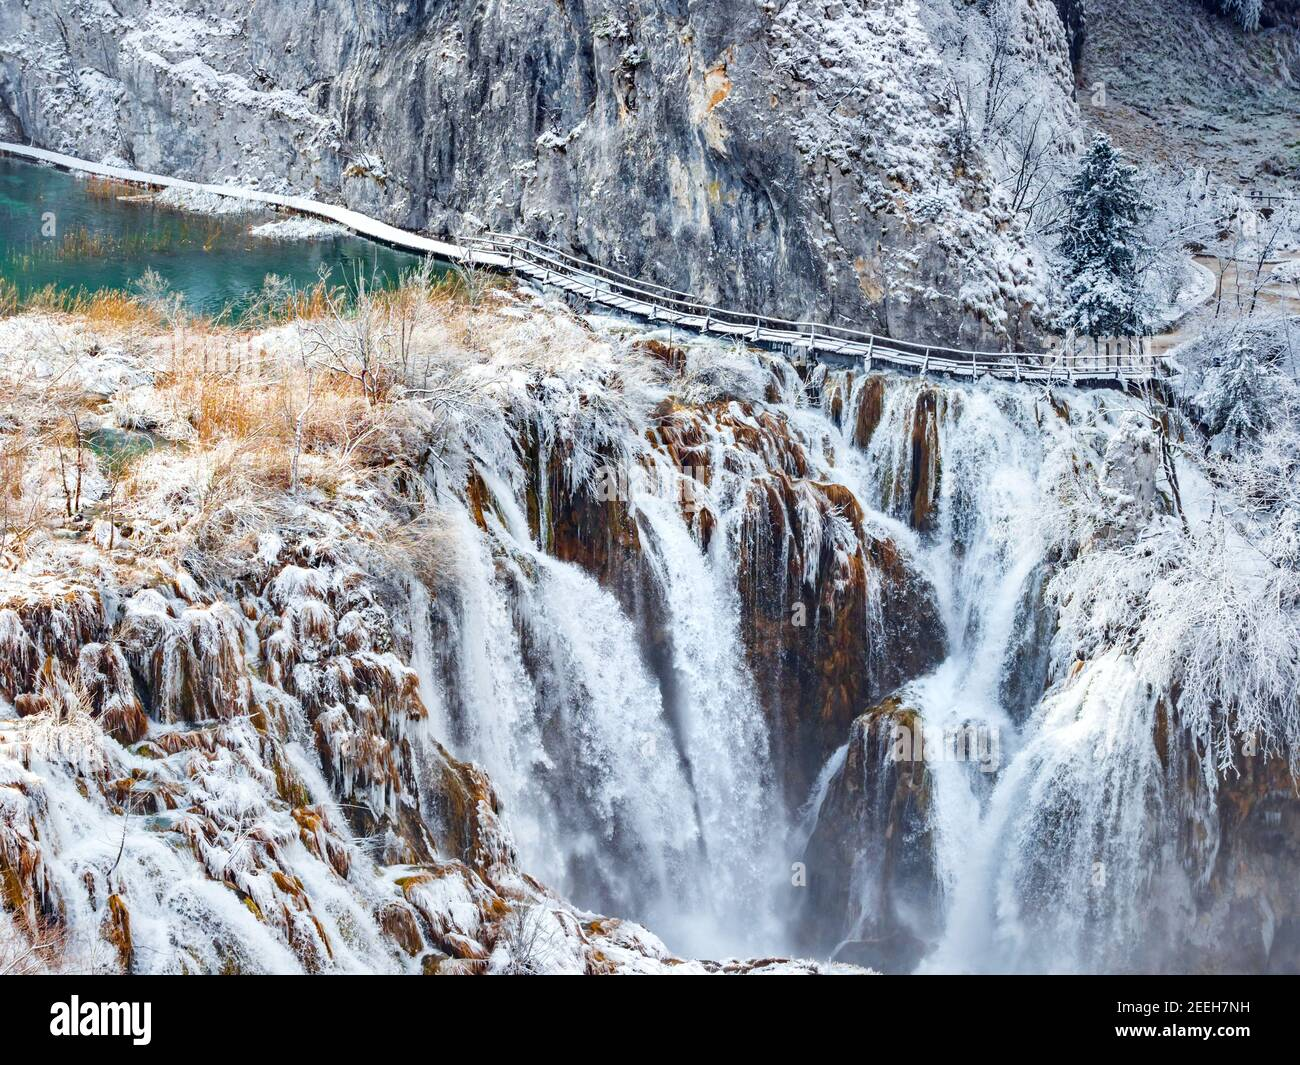 Waterfalls in national park Plitvice lakes Croatia Europe Winter under covered cover snow ice waterflow water flowing flow streaming water stream Stock Photo